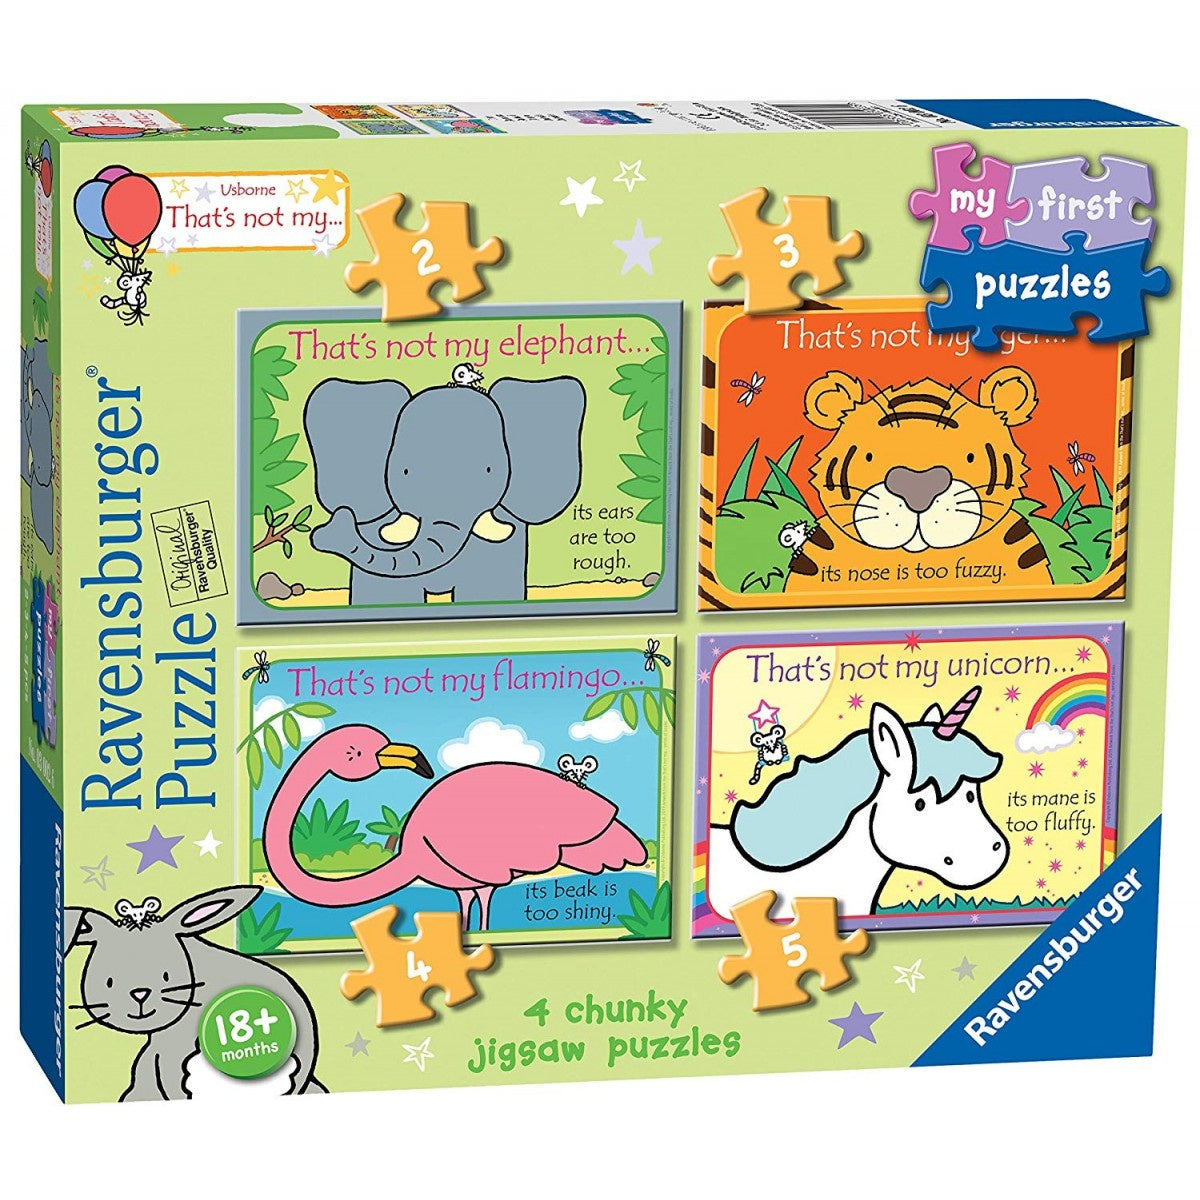 Usborne That's Not My... My First Puzzles Jigsaw Puzzles